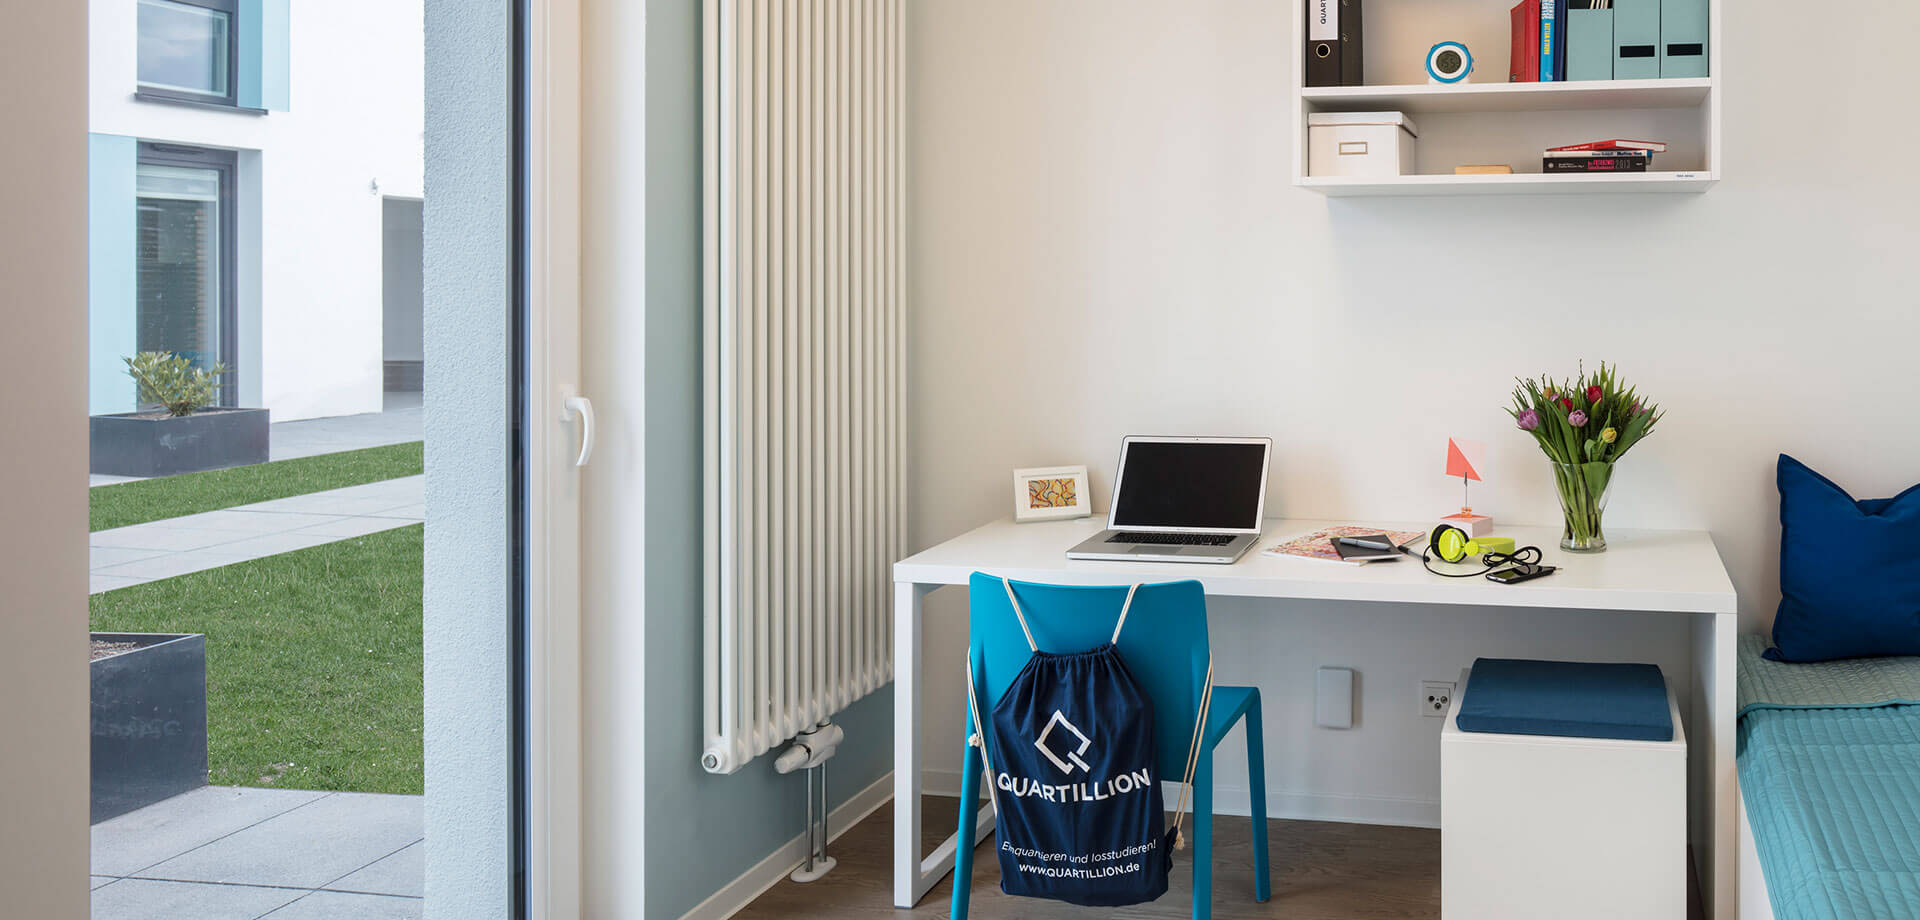 Quartillion Köln - Premium Apartment